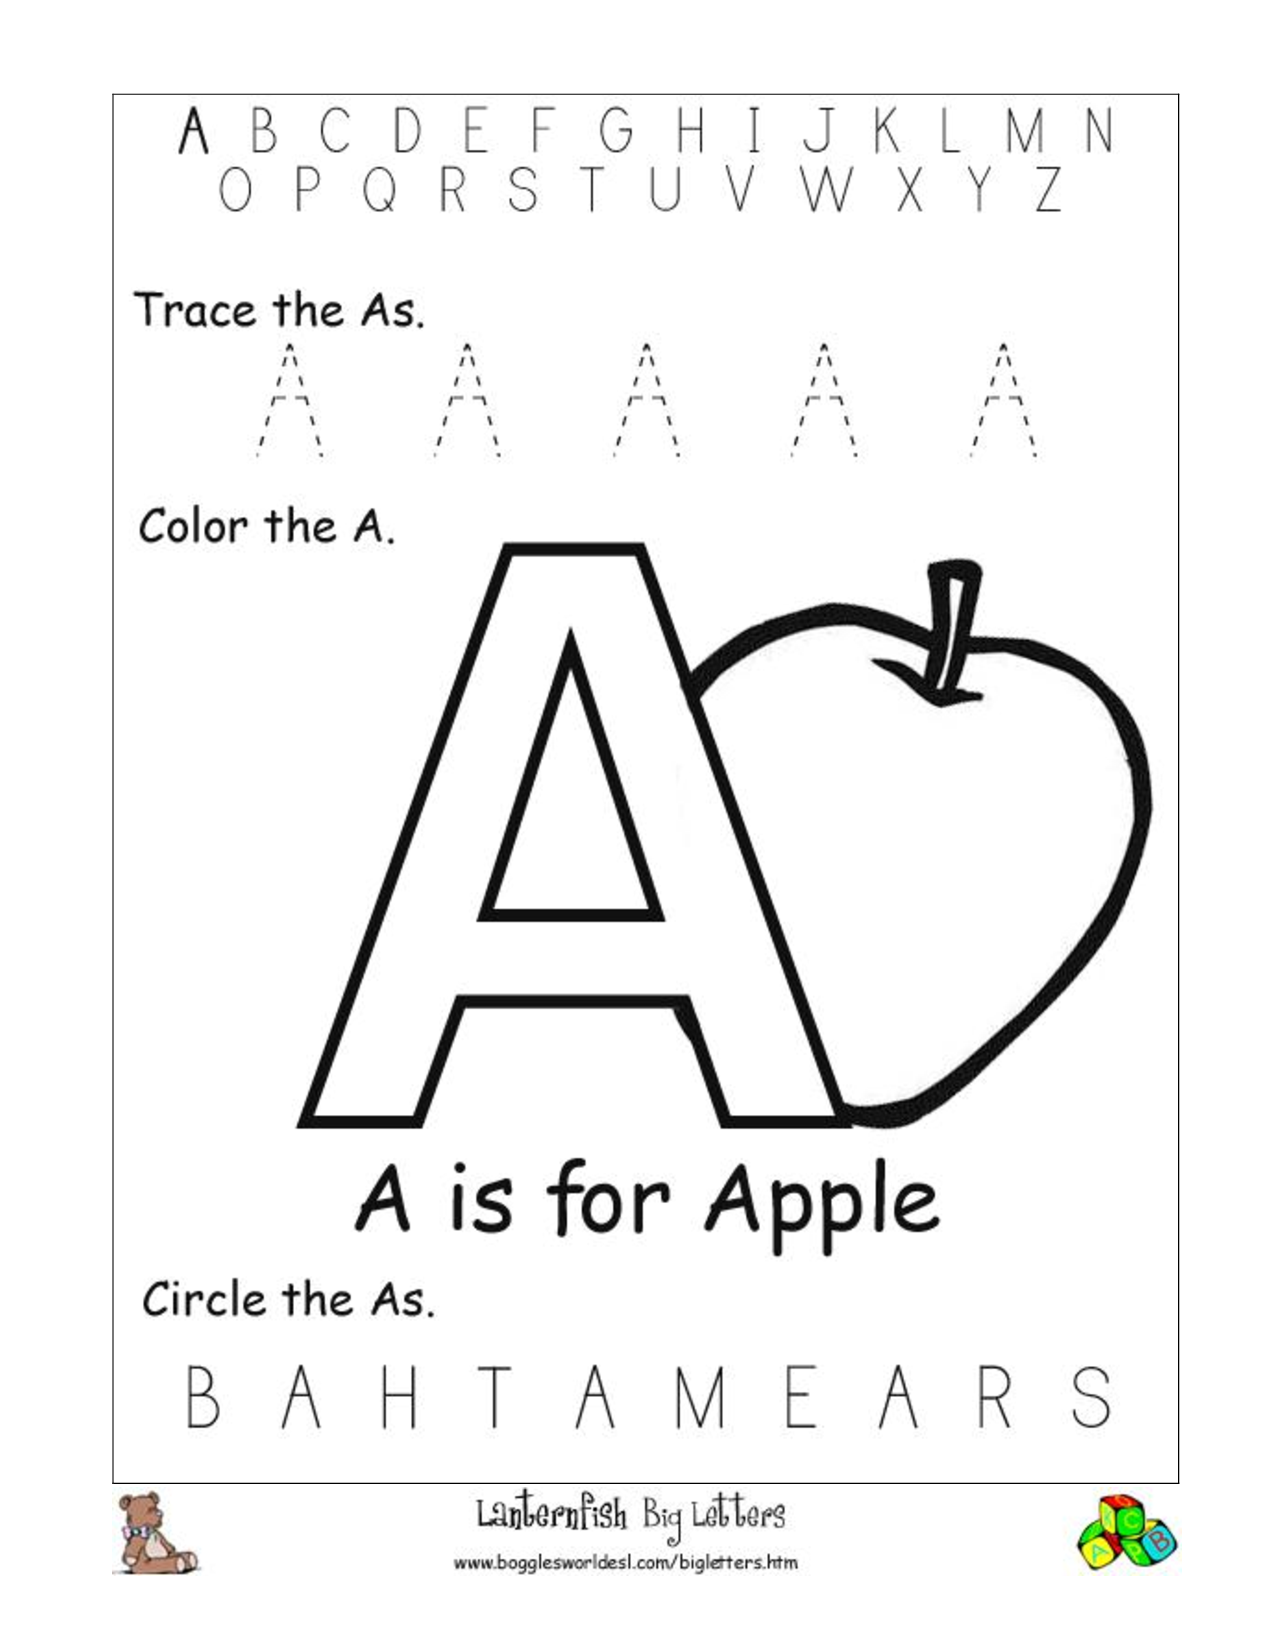 worksheet Letter A Worksheets letter a worksheets hd wallpapers download free tumblr pinterest wallpapers